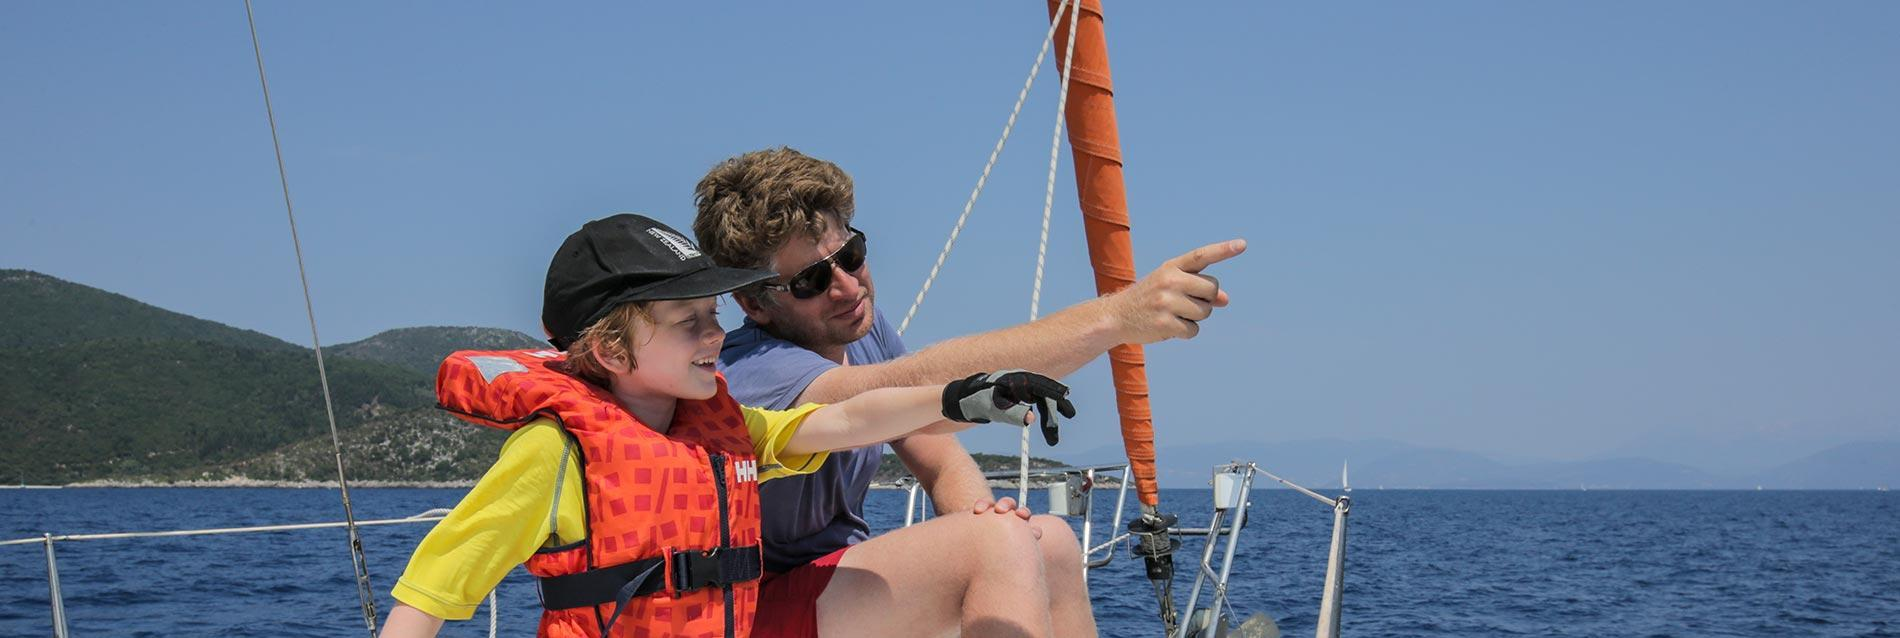 family sailing holidays